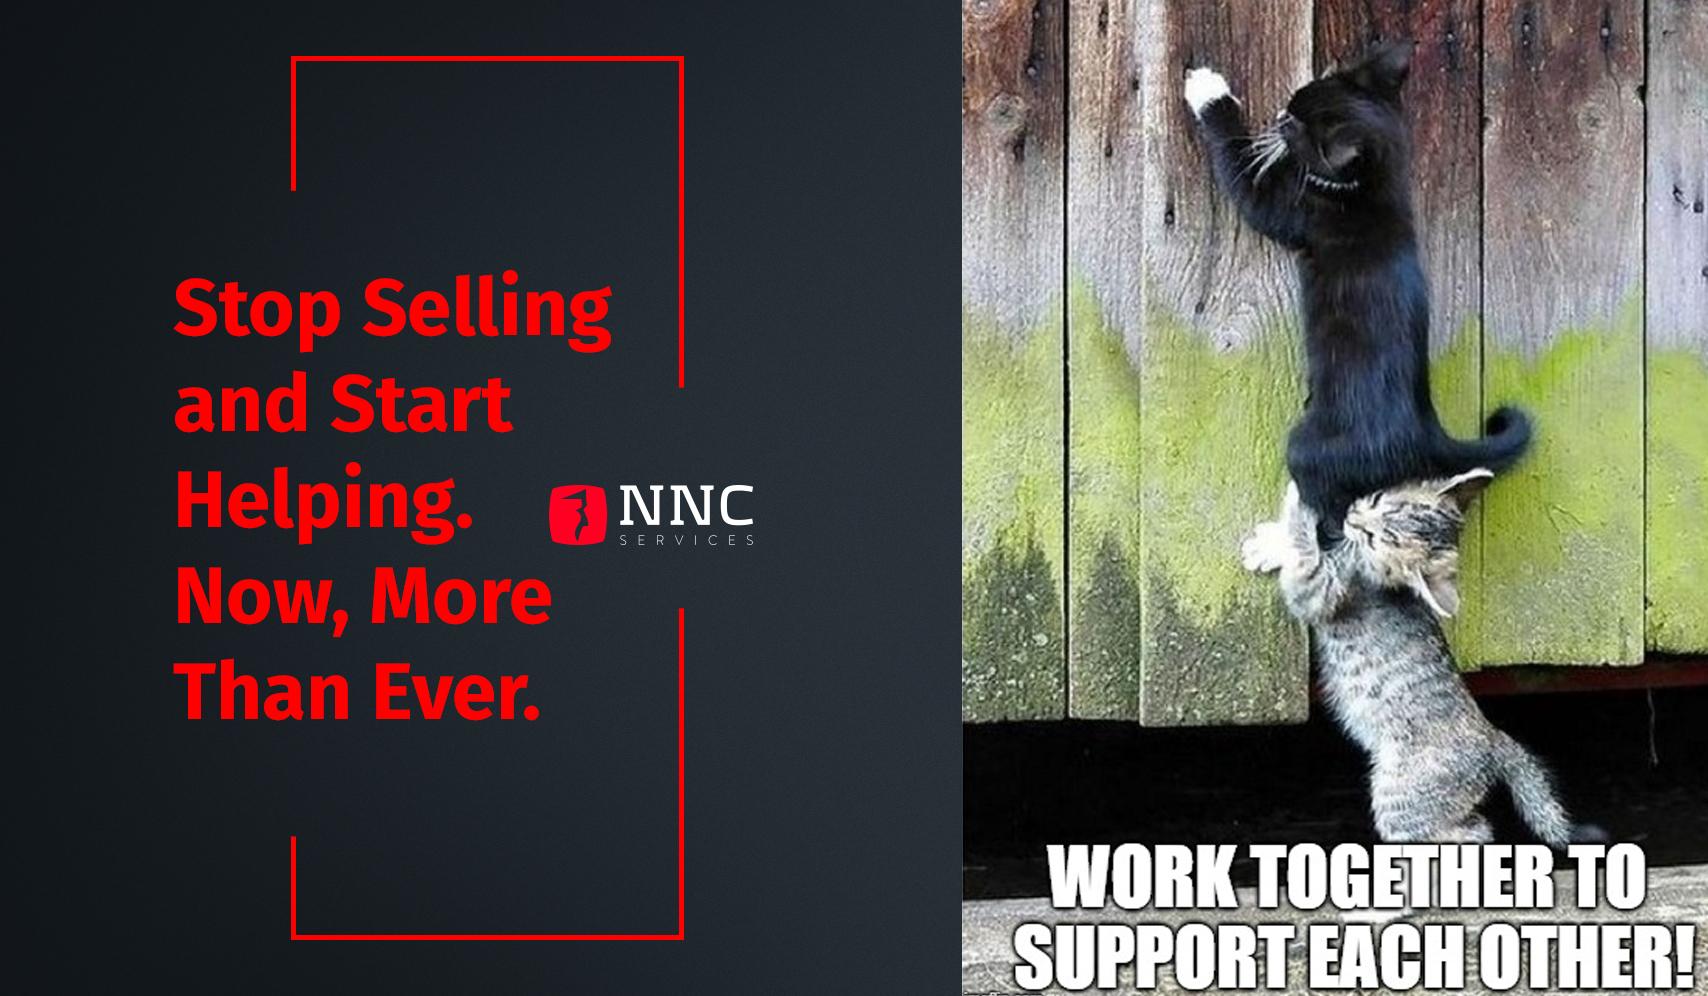 Stop-Selling-and-Start-Helping